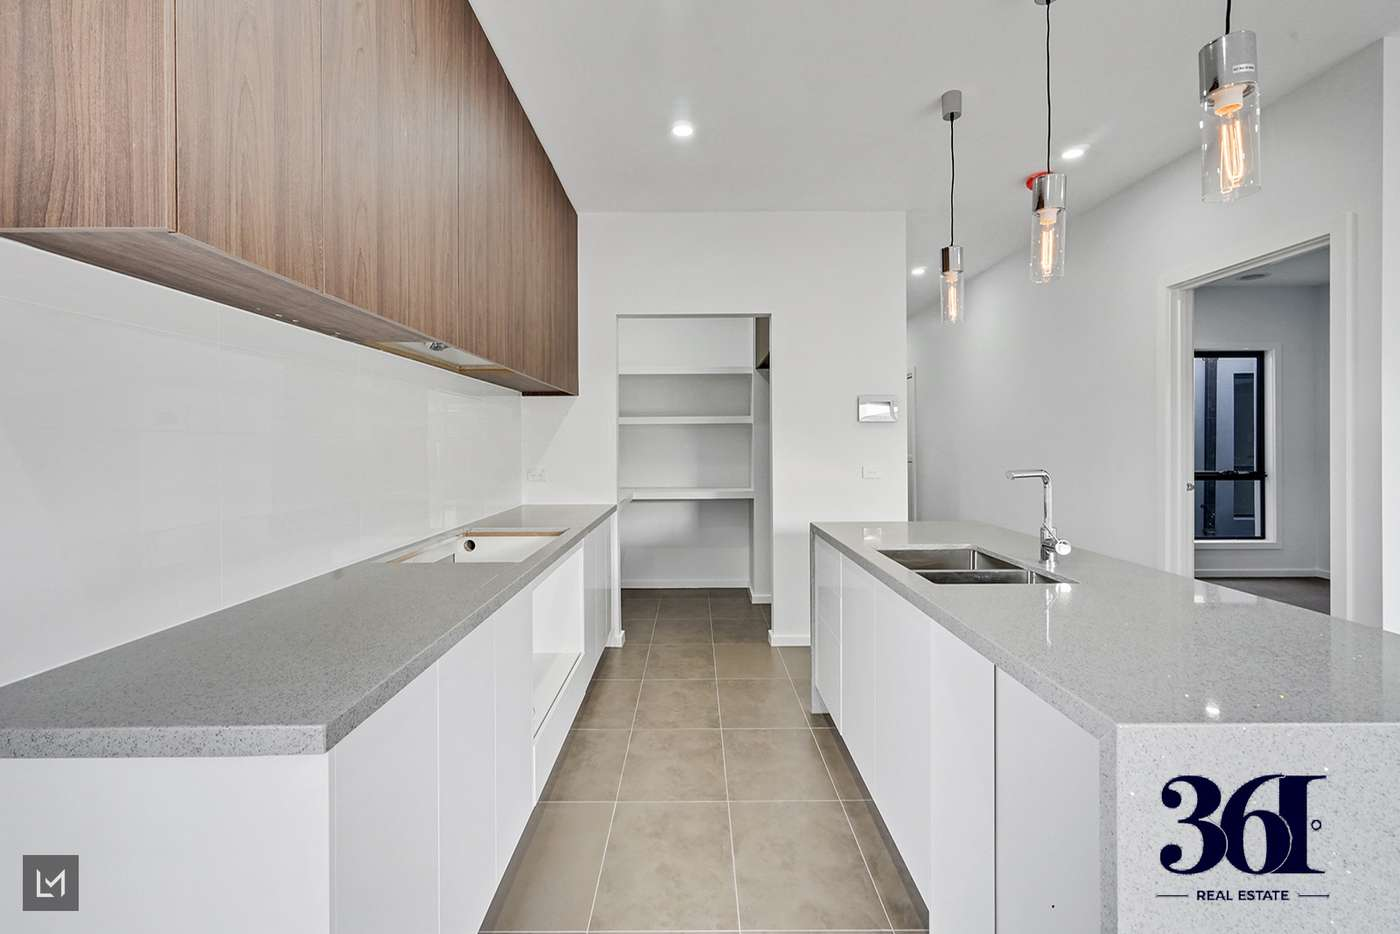 Seventh view of Homely house listing, 67 Belvedere Dr, Truganina VIC 3029